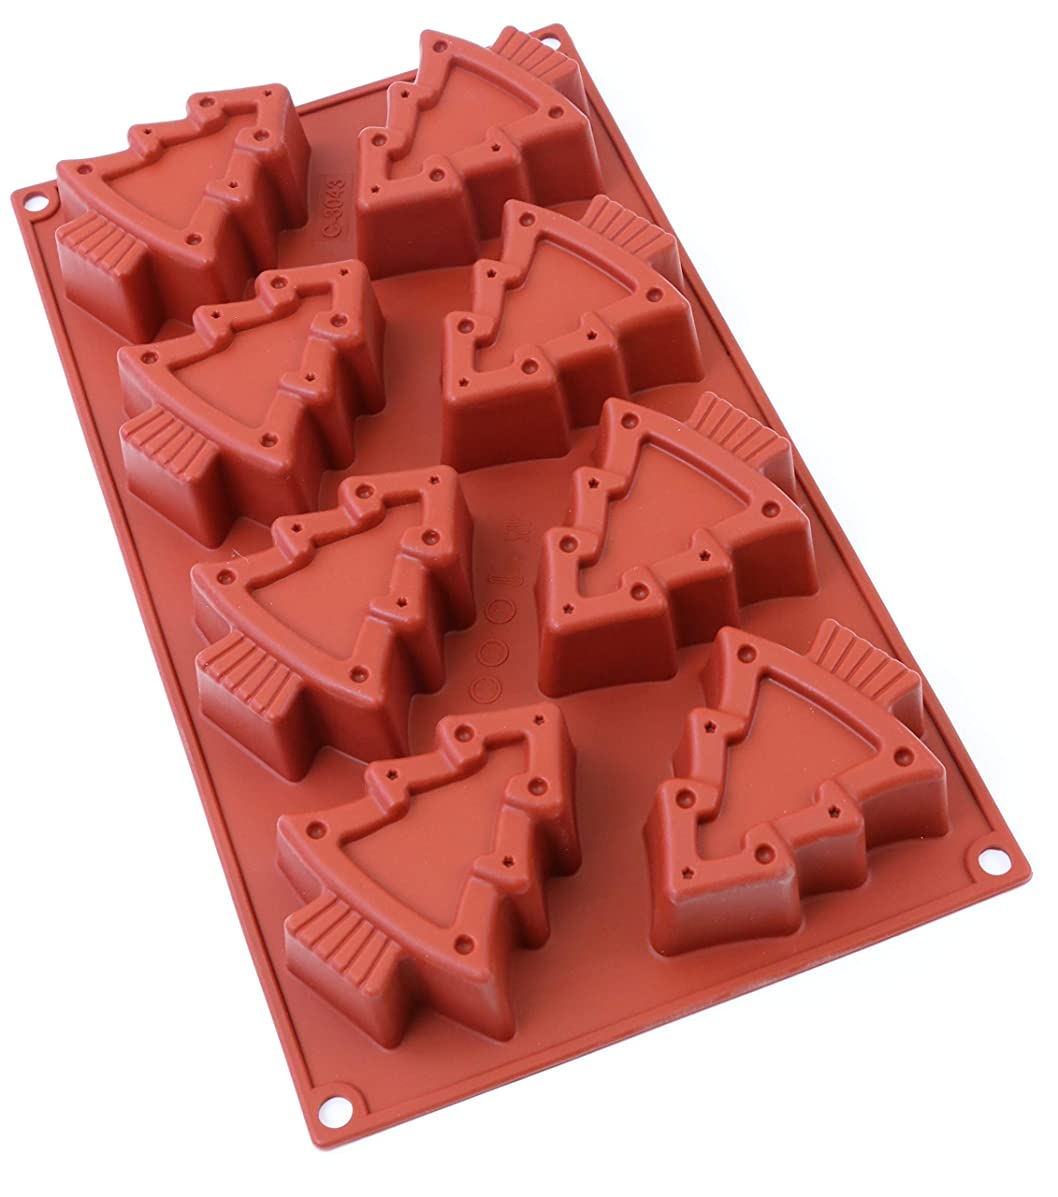 oggibox Christmas Silicone Mold for Muffin, Cupcake, Brownie, Cornbread, Cheesecake, Panna Cotta, Pudding, Jello Shot, Soap and More… (Christmas tree)